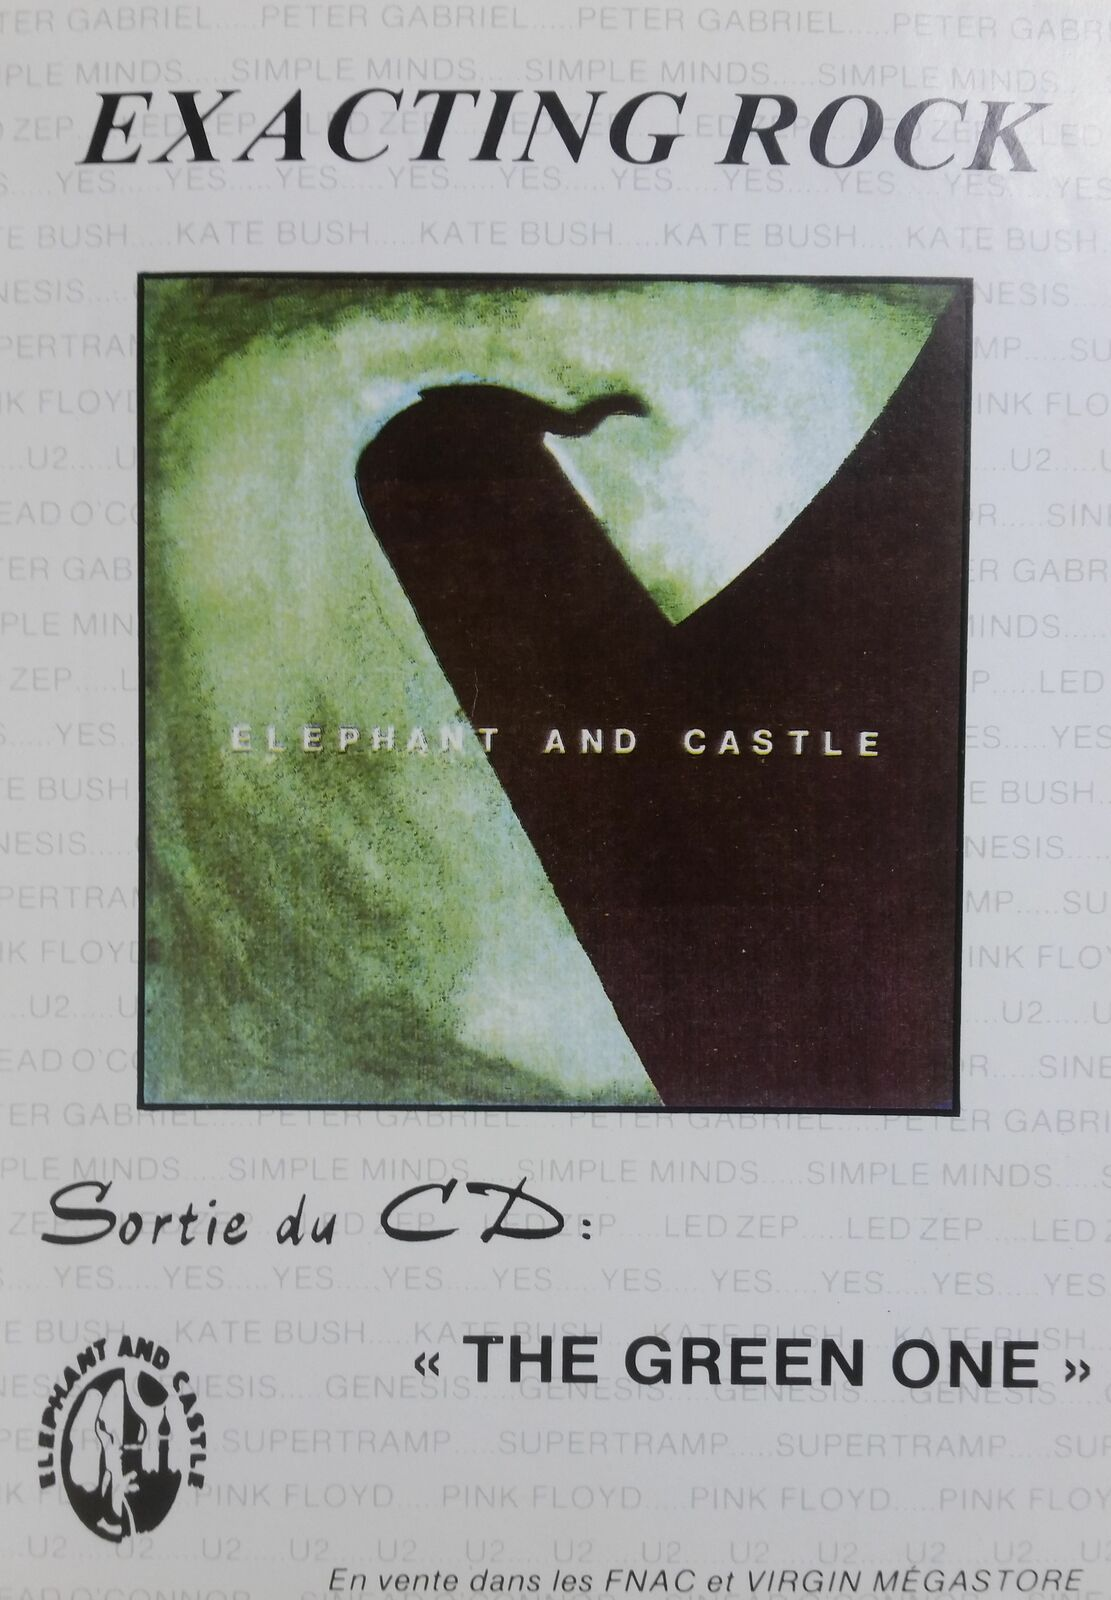 The Green One Flyer : E&C plays exacting rock